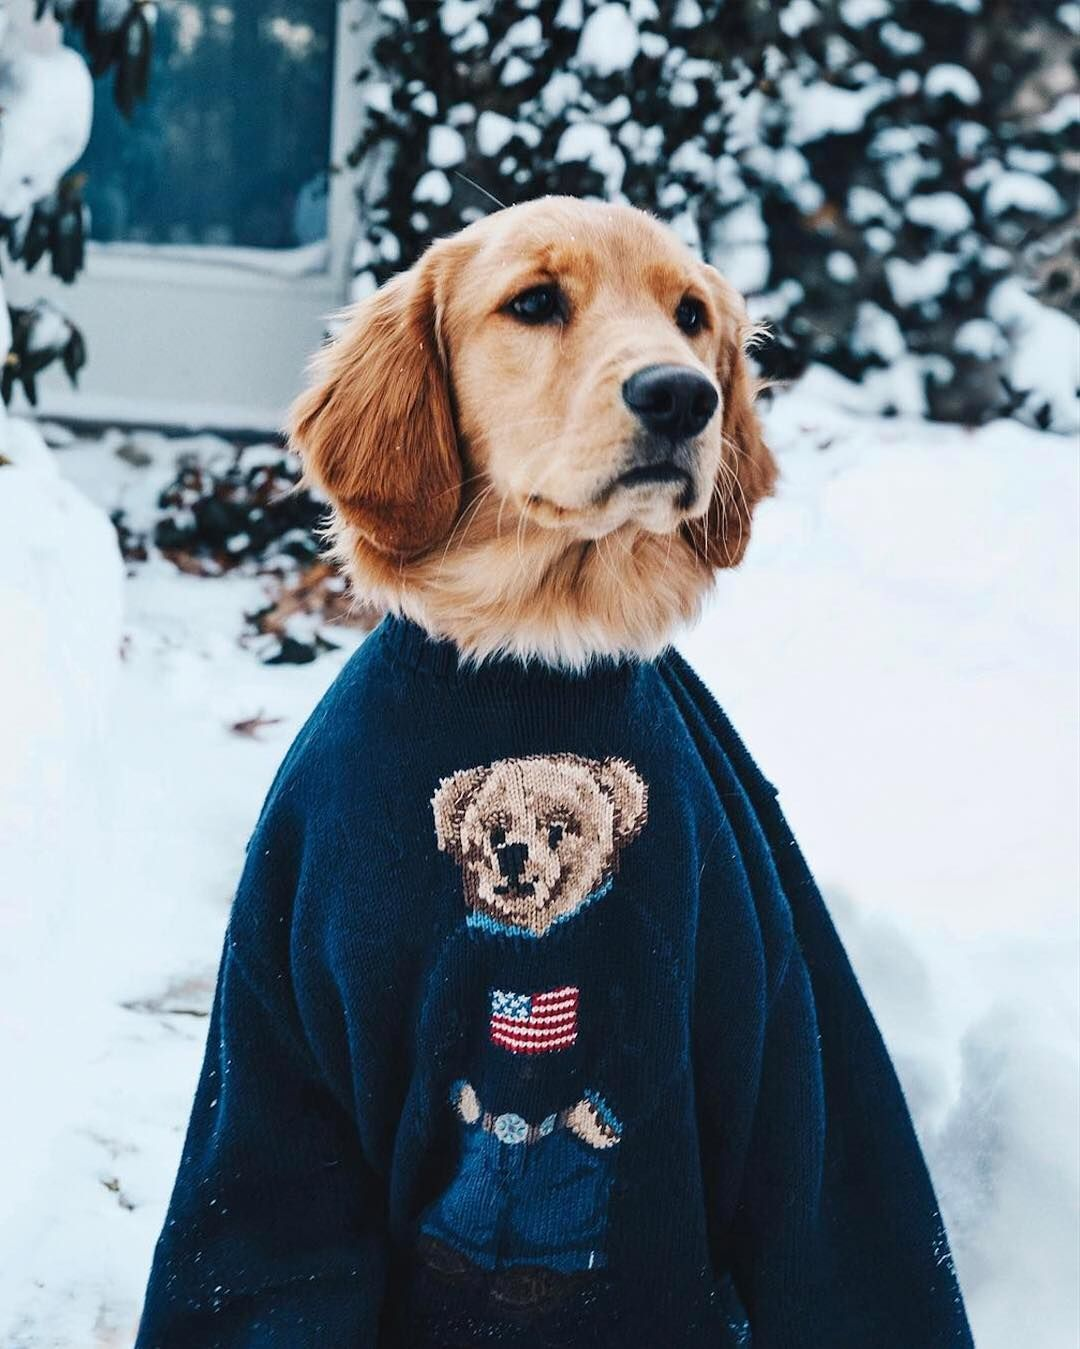 Sarah Vickers' dog, of @puffinandbennie, in the Classic Polo Bear Sweater